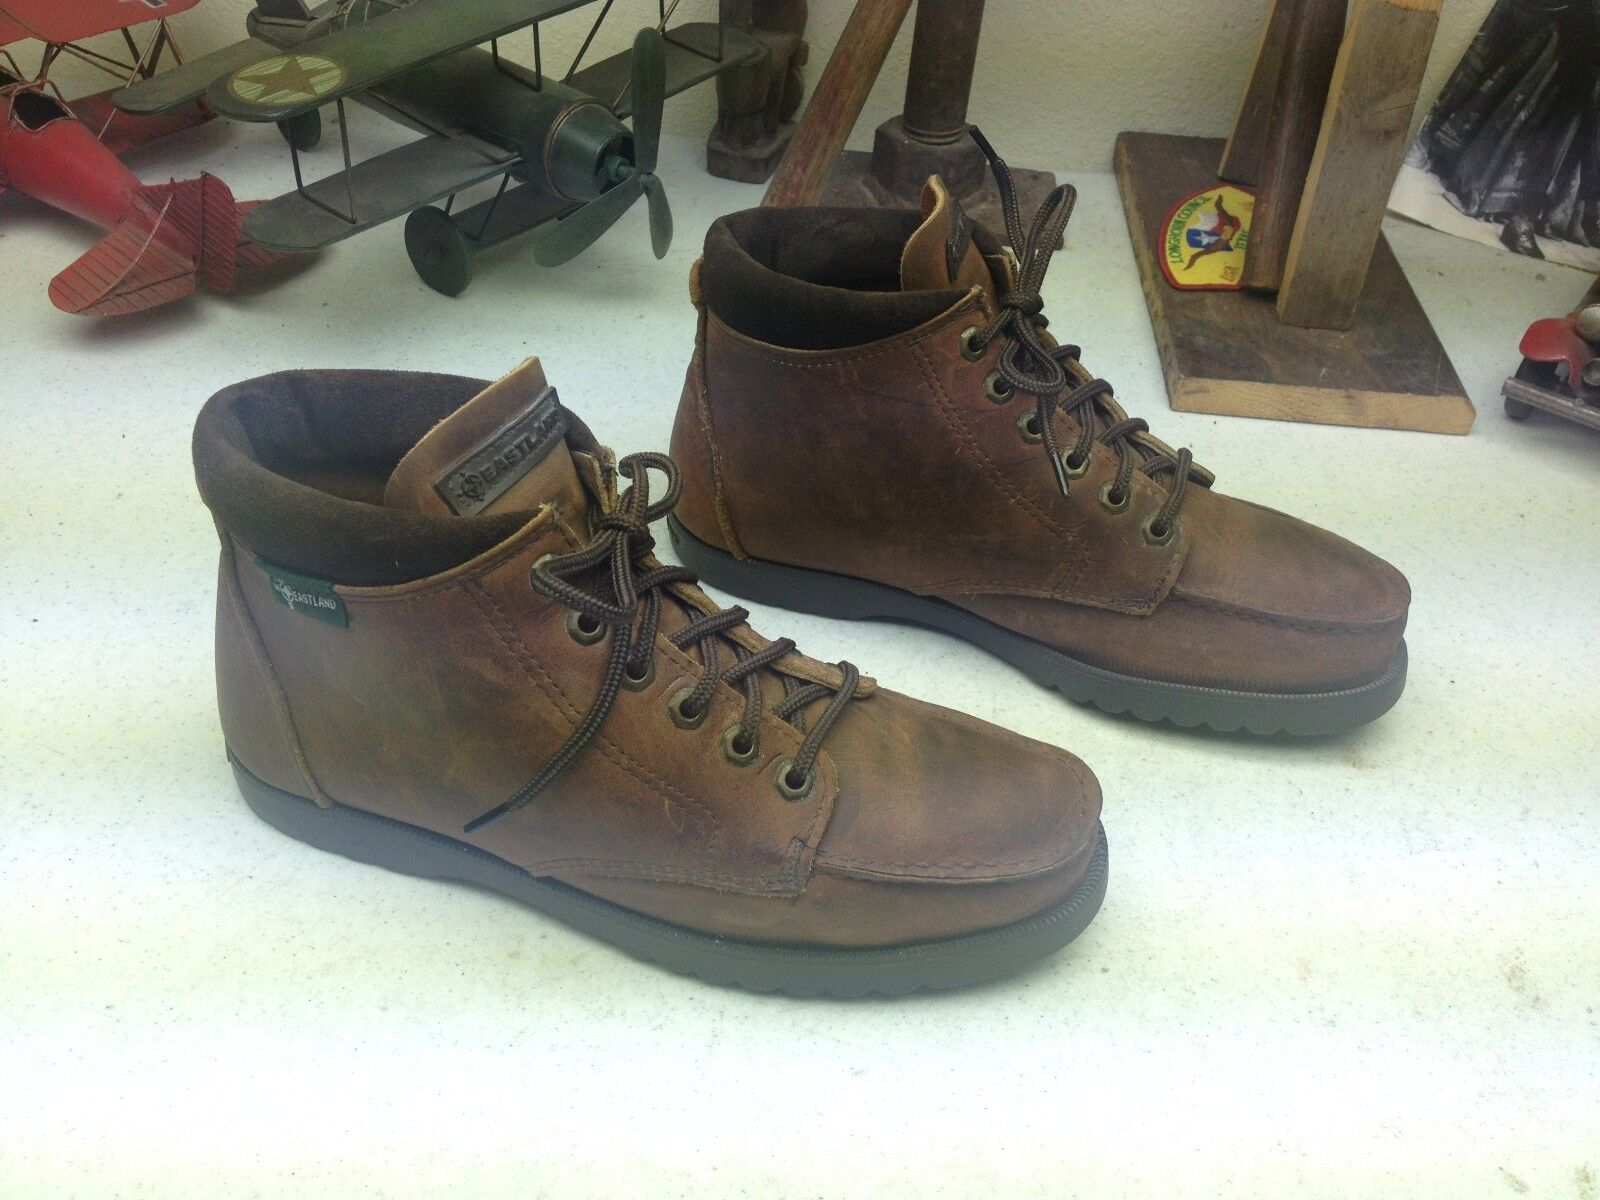 EASTLAND LACE UP UP UP MADE USA VINTAGE braun LEATHER RUSTIC TRAIL HIKE BOSS Stiefel 9 D b0b54c